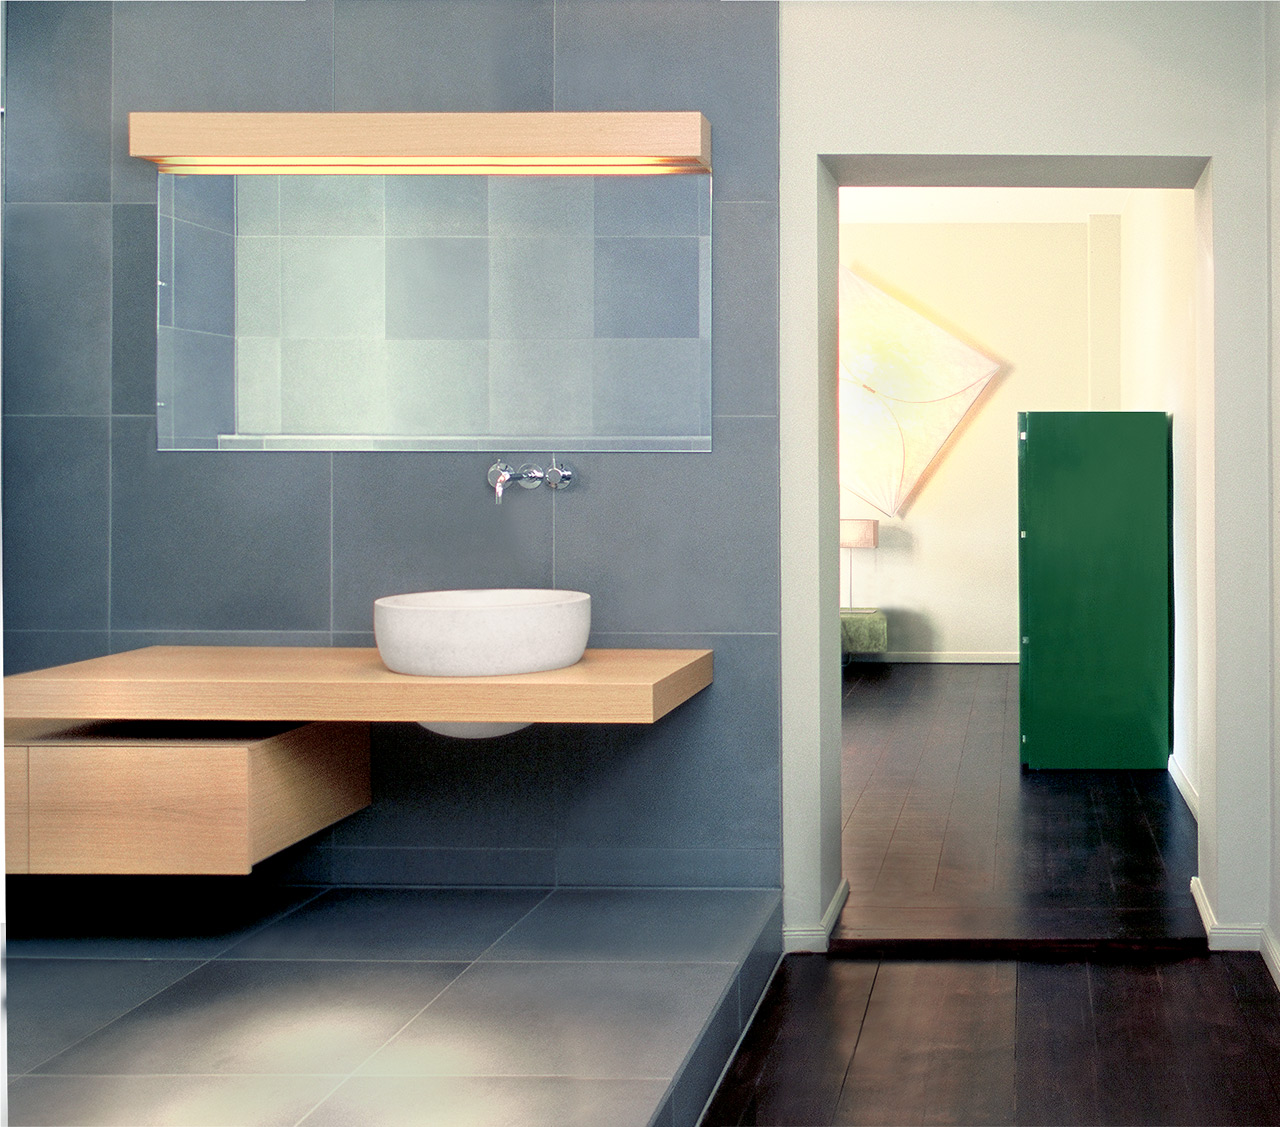 In the bathroom: tiles in natural stone and functional timber furniture.